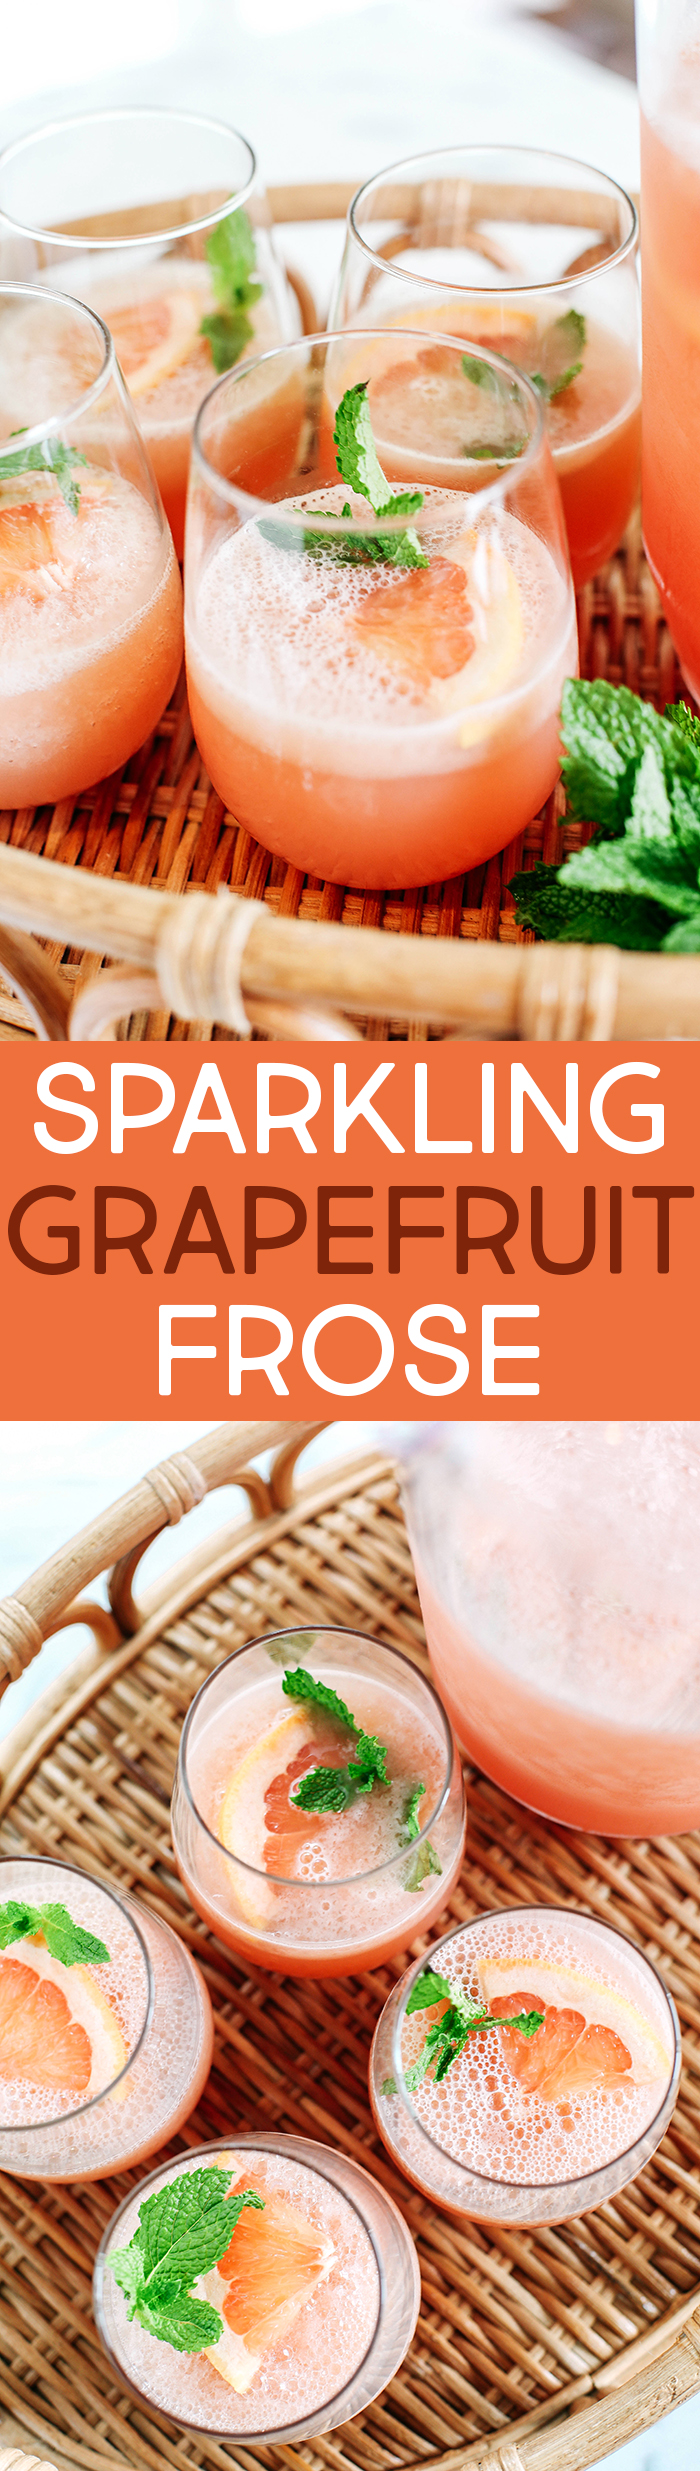 Refreshing Sparkling Grapefruit Frosé that is all natural with zero refined sugar, your favorite bottle of rosé and makes the perfect summer cocktail!